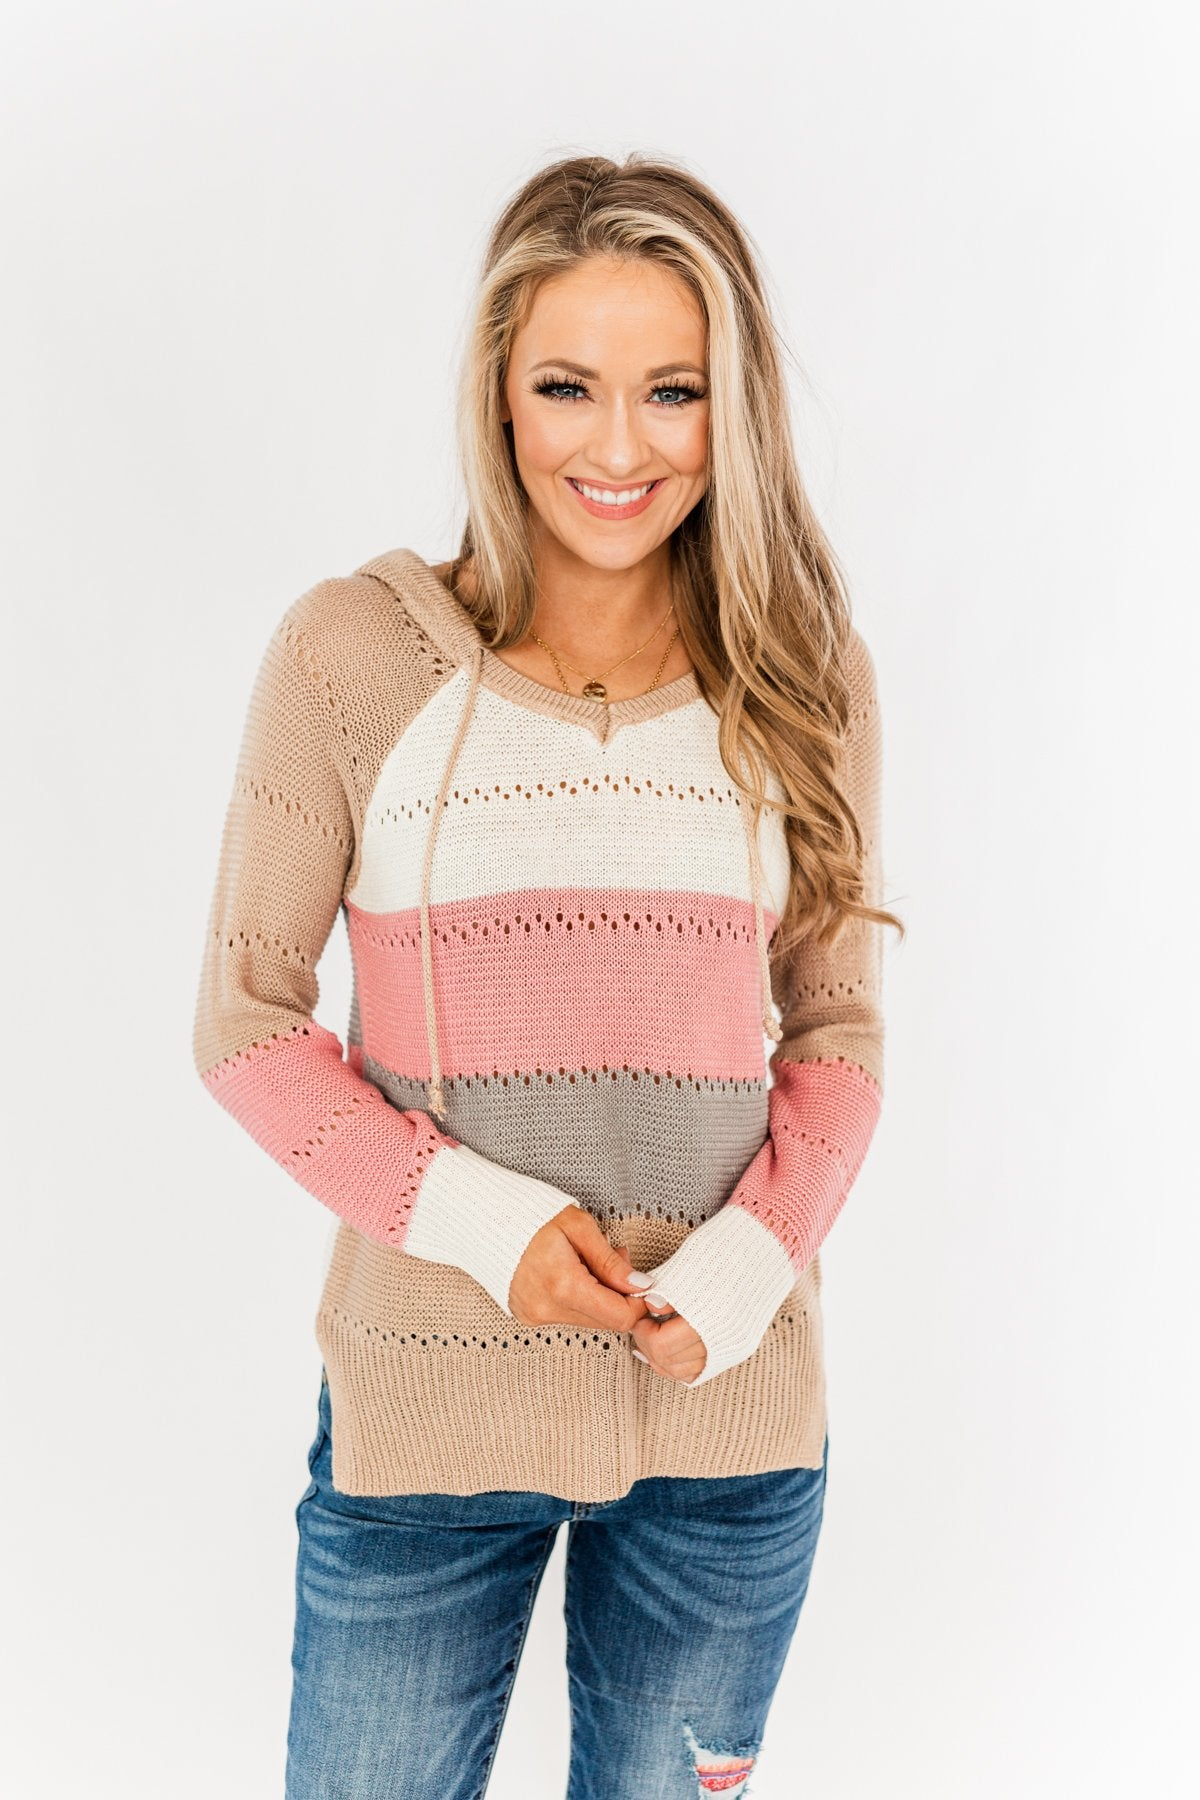 A Day With You Knit Hoodie- Tan, Pink, Off-White & Grey